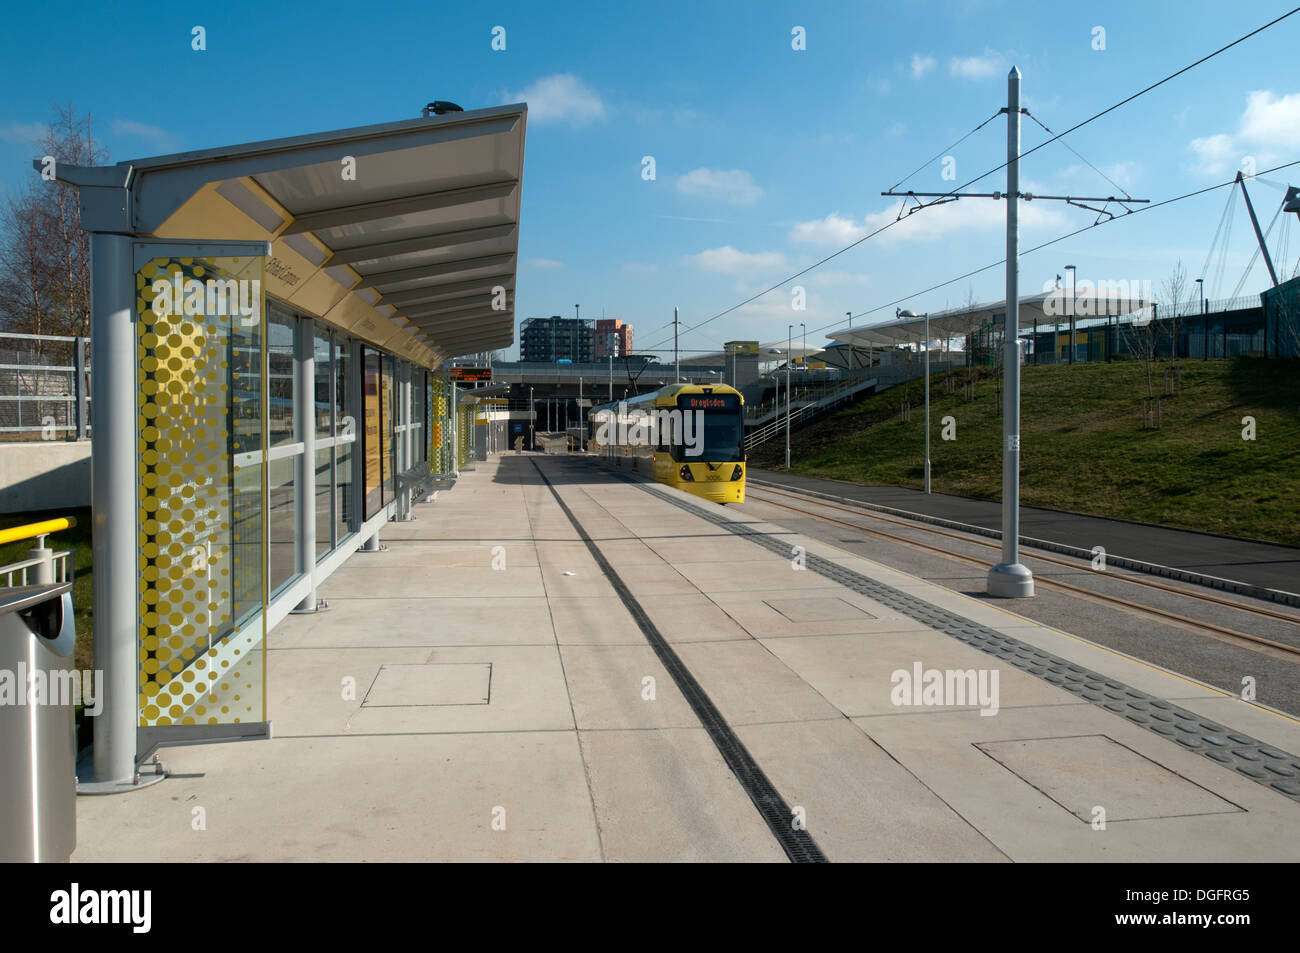 Metrolink tram at the Etihad Campus stop, on the East Manchester Line, Eastlands, Manchester, England, UK - Stock Image